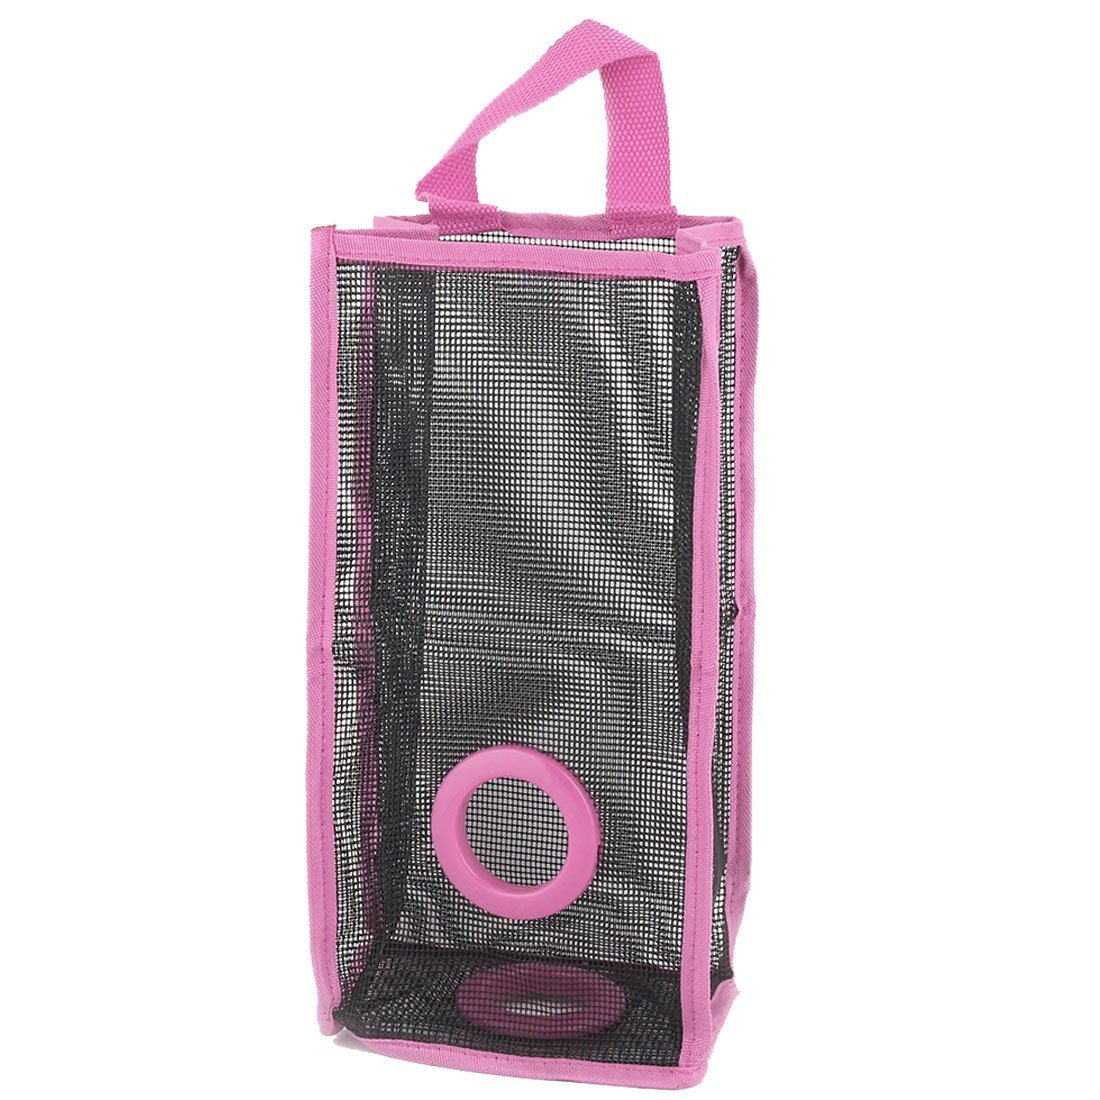 uxcell PVC Mesh Household Bathroom Wall Hanging Grocery Bag Holder Storage Container Fuchsia